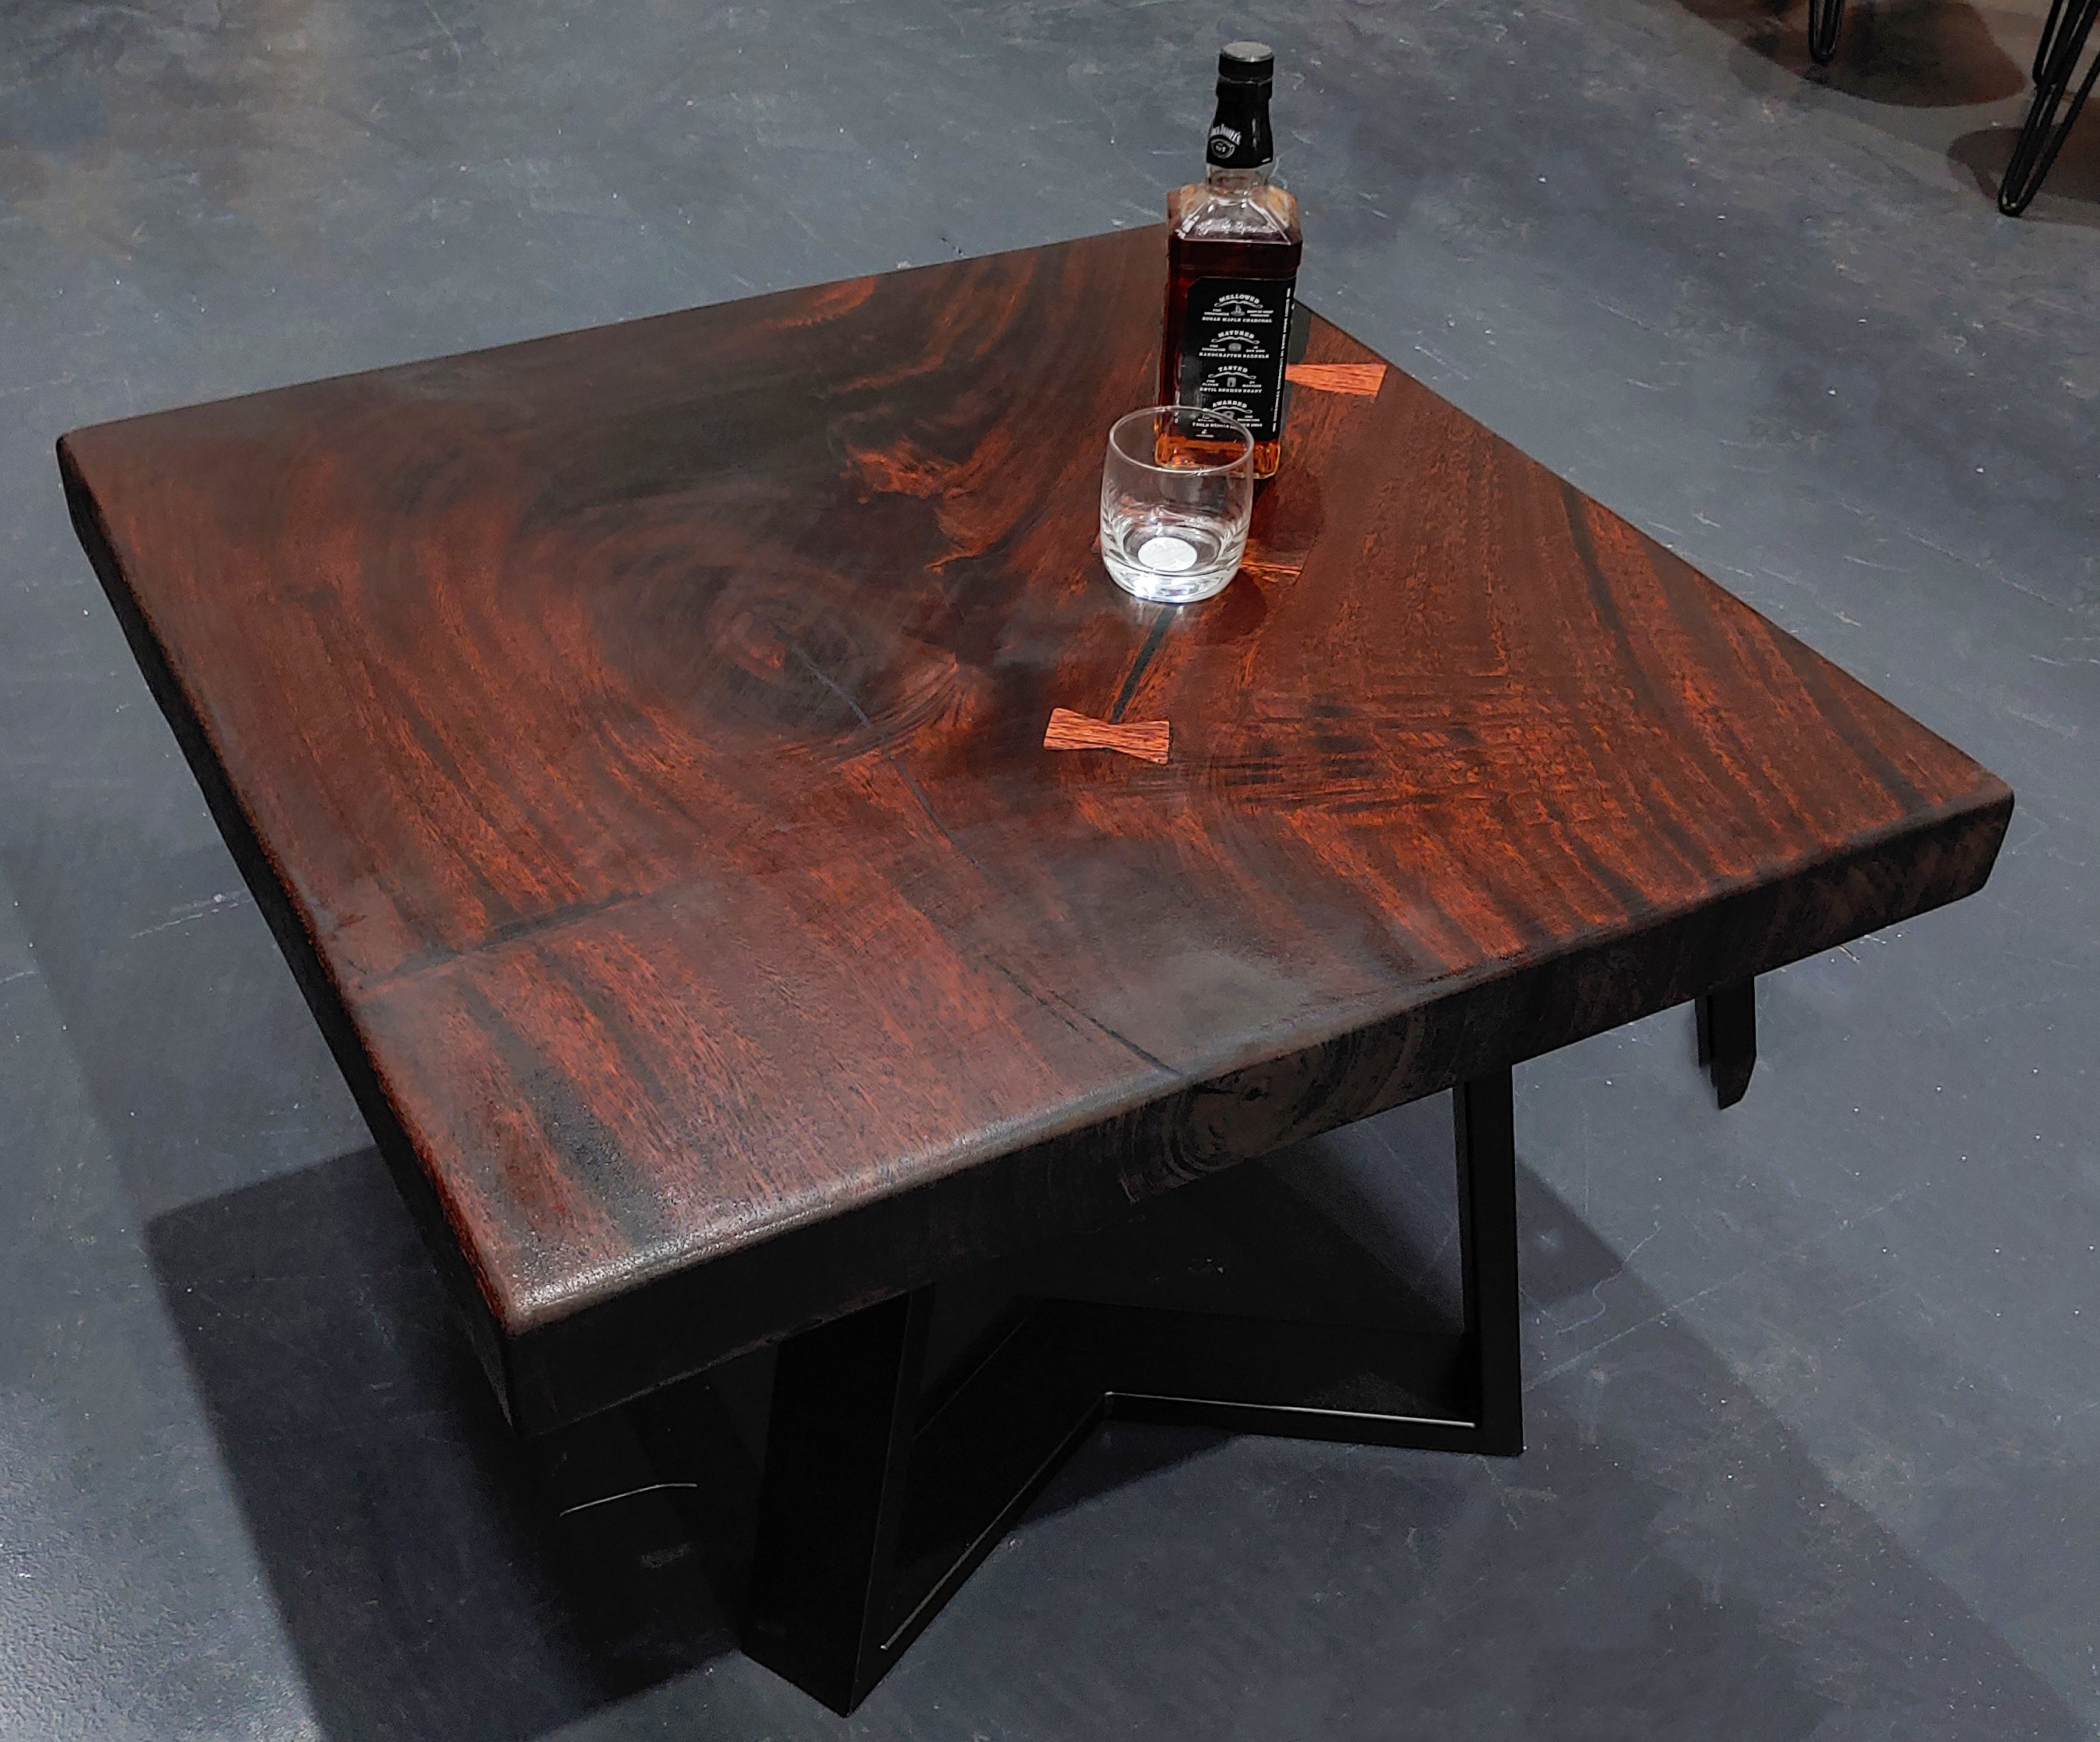 Live edge timber, acacia wood, raintree timber, suar wood, monkeypod wood, sustainable wood, sustainable timber, living art decor, live edge timber, live edge table, tables, table top, dining table, coffee table, furniture, hardwood furniture, interior decor, home decor, one of a kind, unique, wood grain, luxury